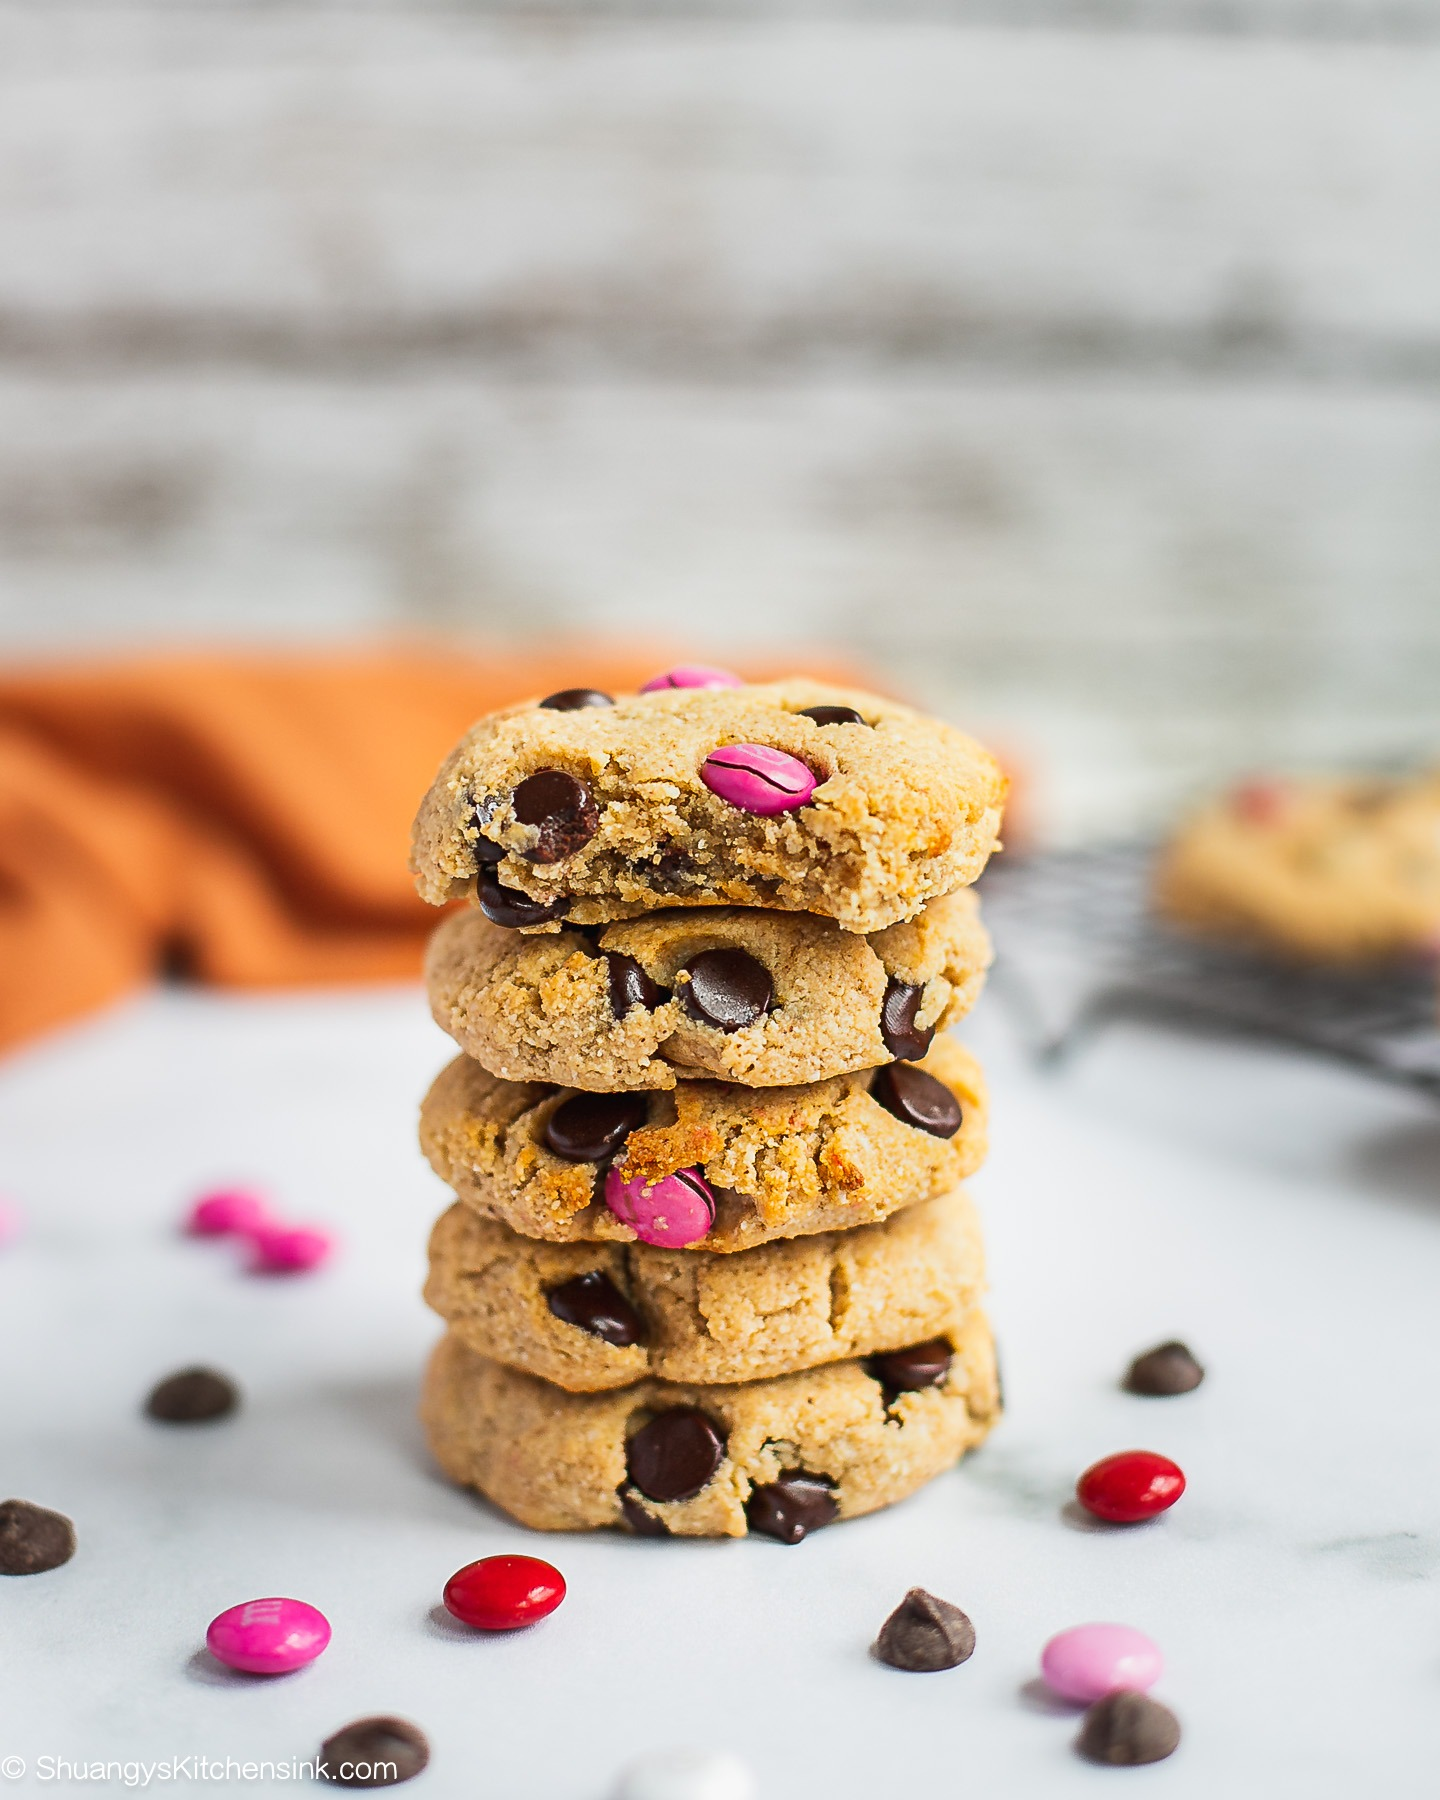 A stack of chocolate chip M&M cookies. There are pieces of M&Ms around it and an orange towel in the back. There is a bite in the cookie on top.